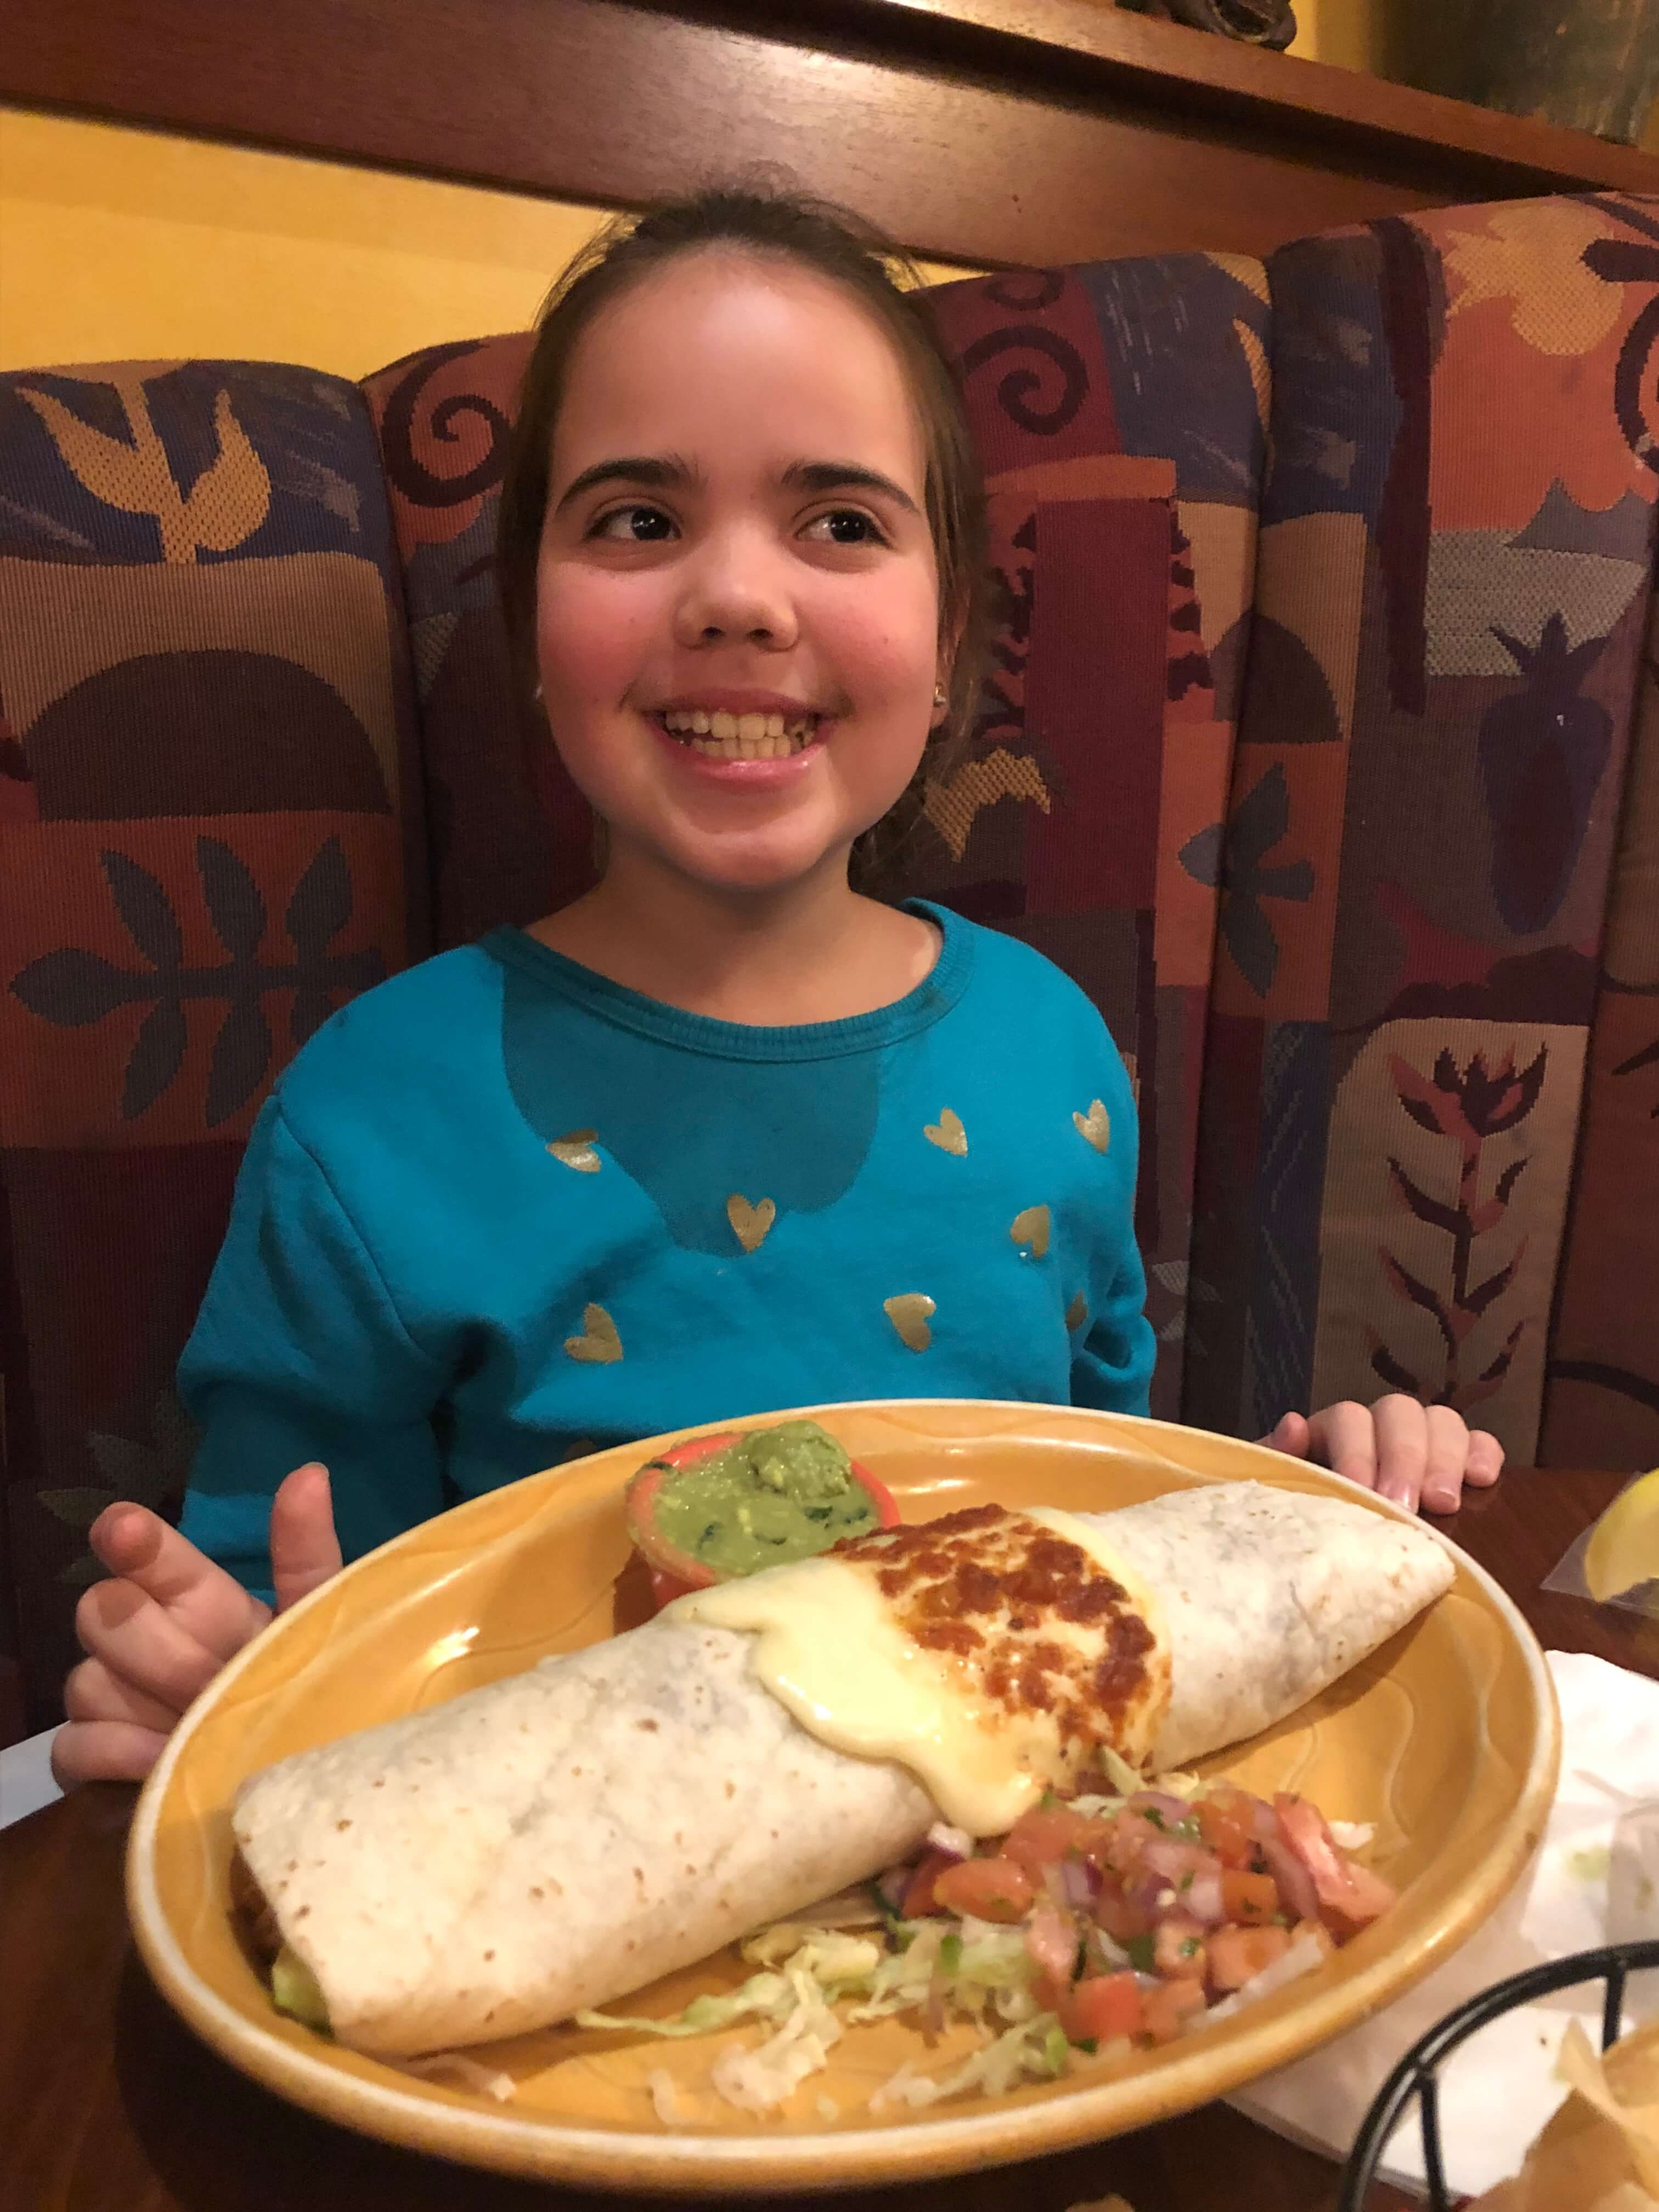 Giant Burrito at the Blue Moon Mexican Cafe Serves Up Delicious Mexican Fare for the Whole Family